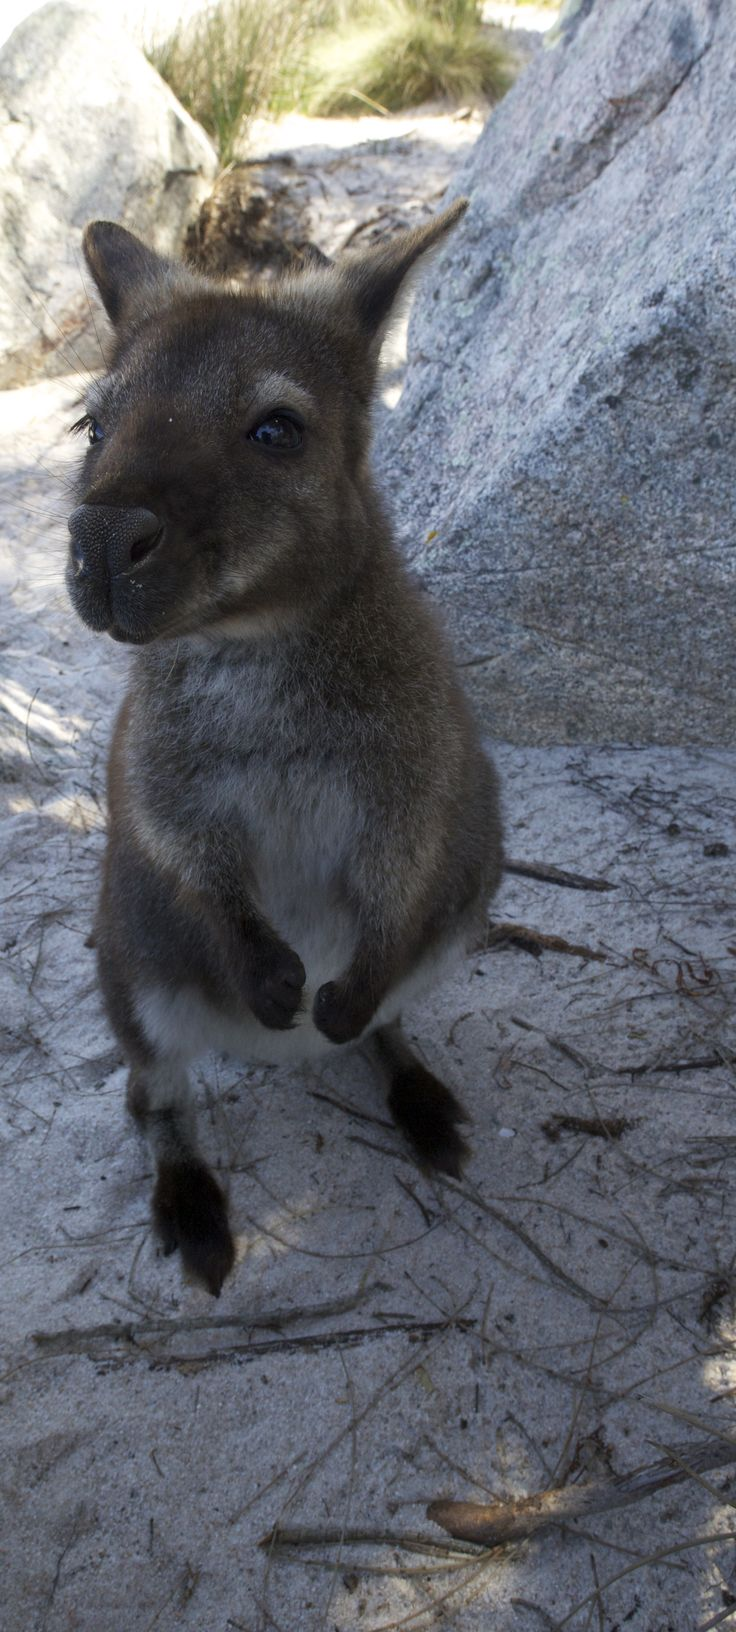 I was able to get up very close to this little fella. www.australianphotos.com.au